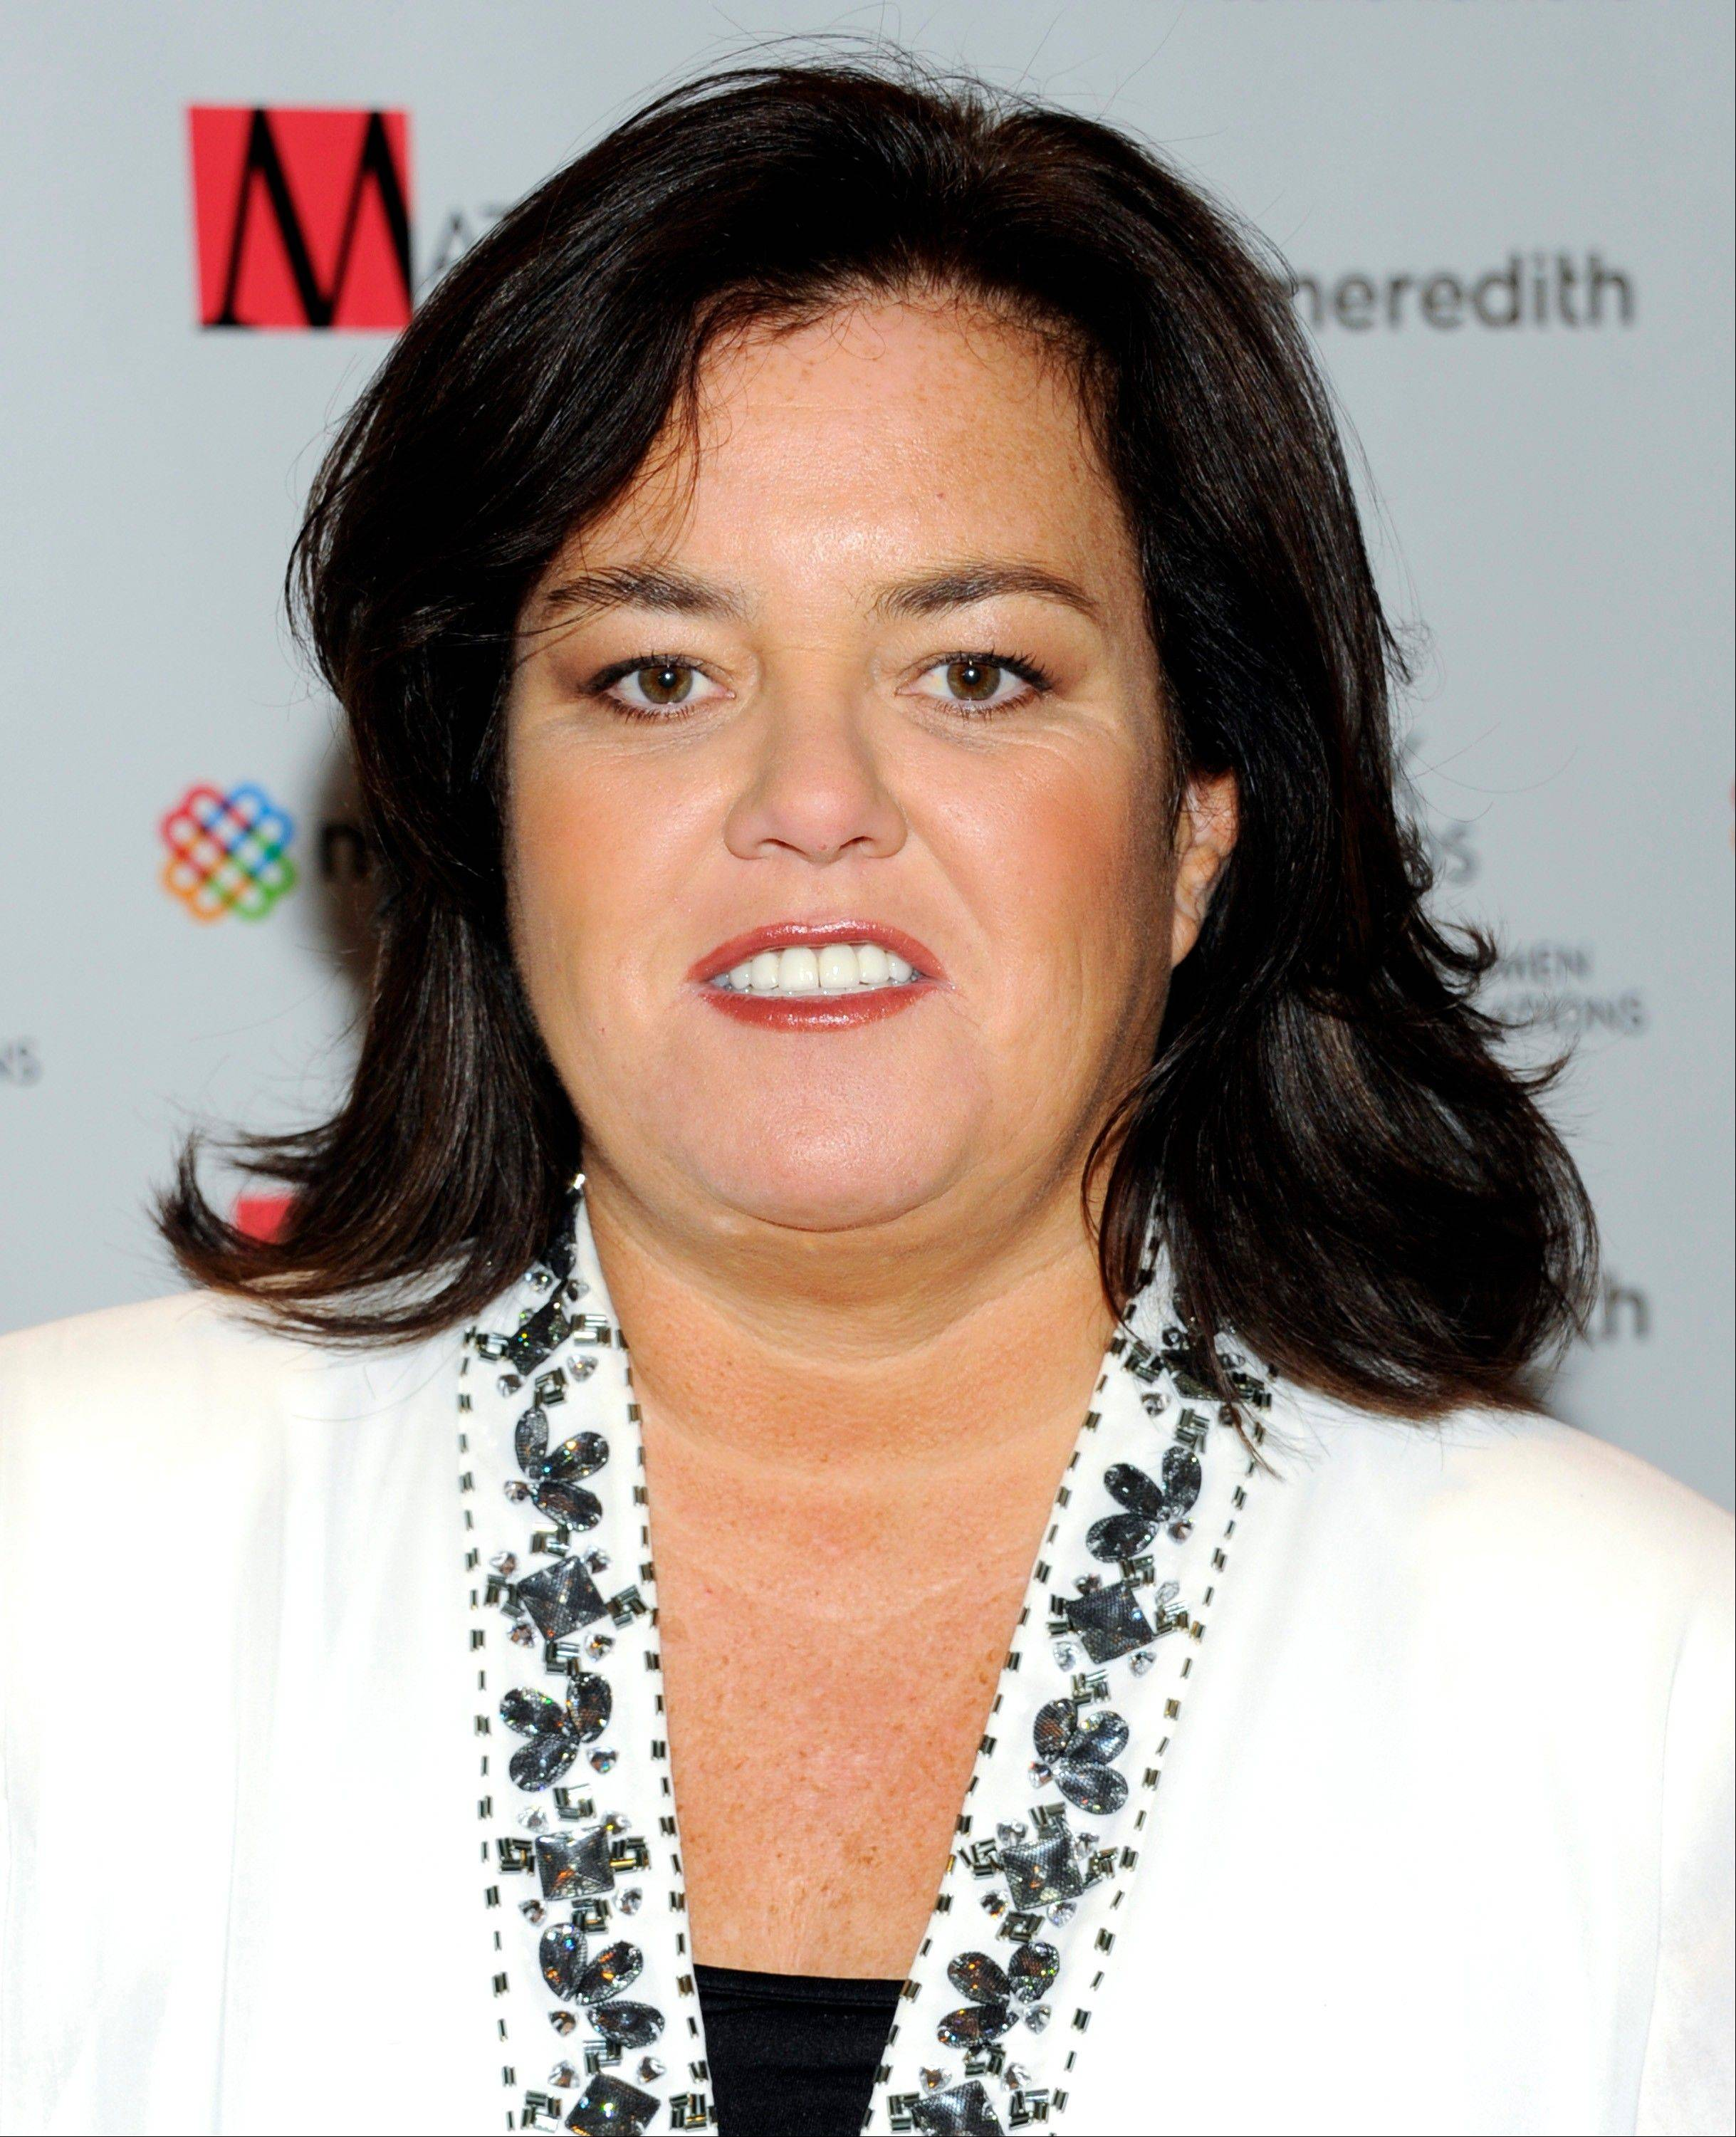 In this April 11, 2011 file photo, television personality Rosie O'Donnell attends the New York Women in Communications' 2011 Matrix Awards in New York. O'Donnell said on her blog, Monday that she's ìlucky to be here after suffering a heart attack last week.